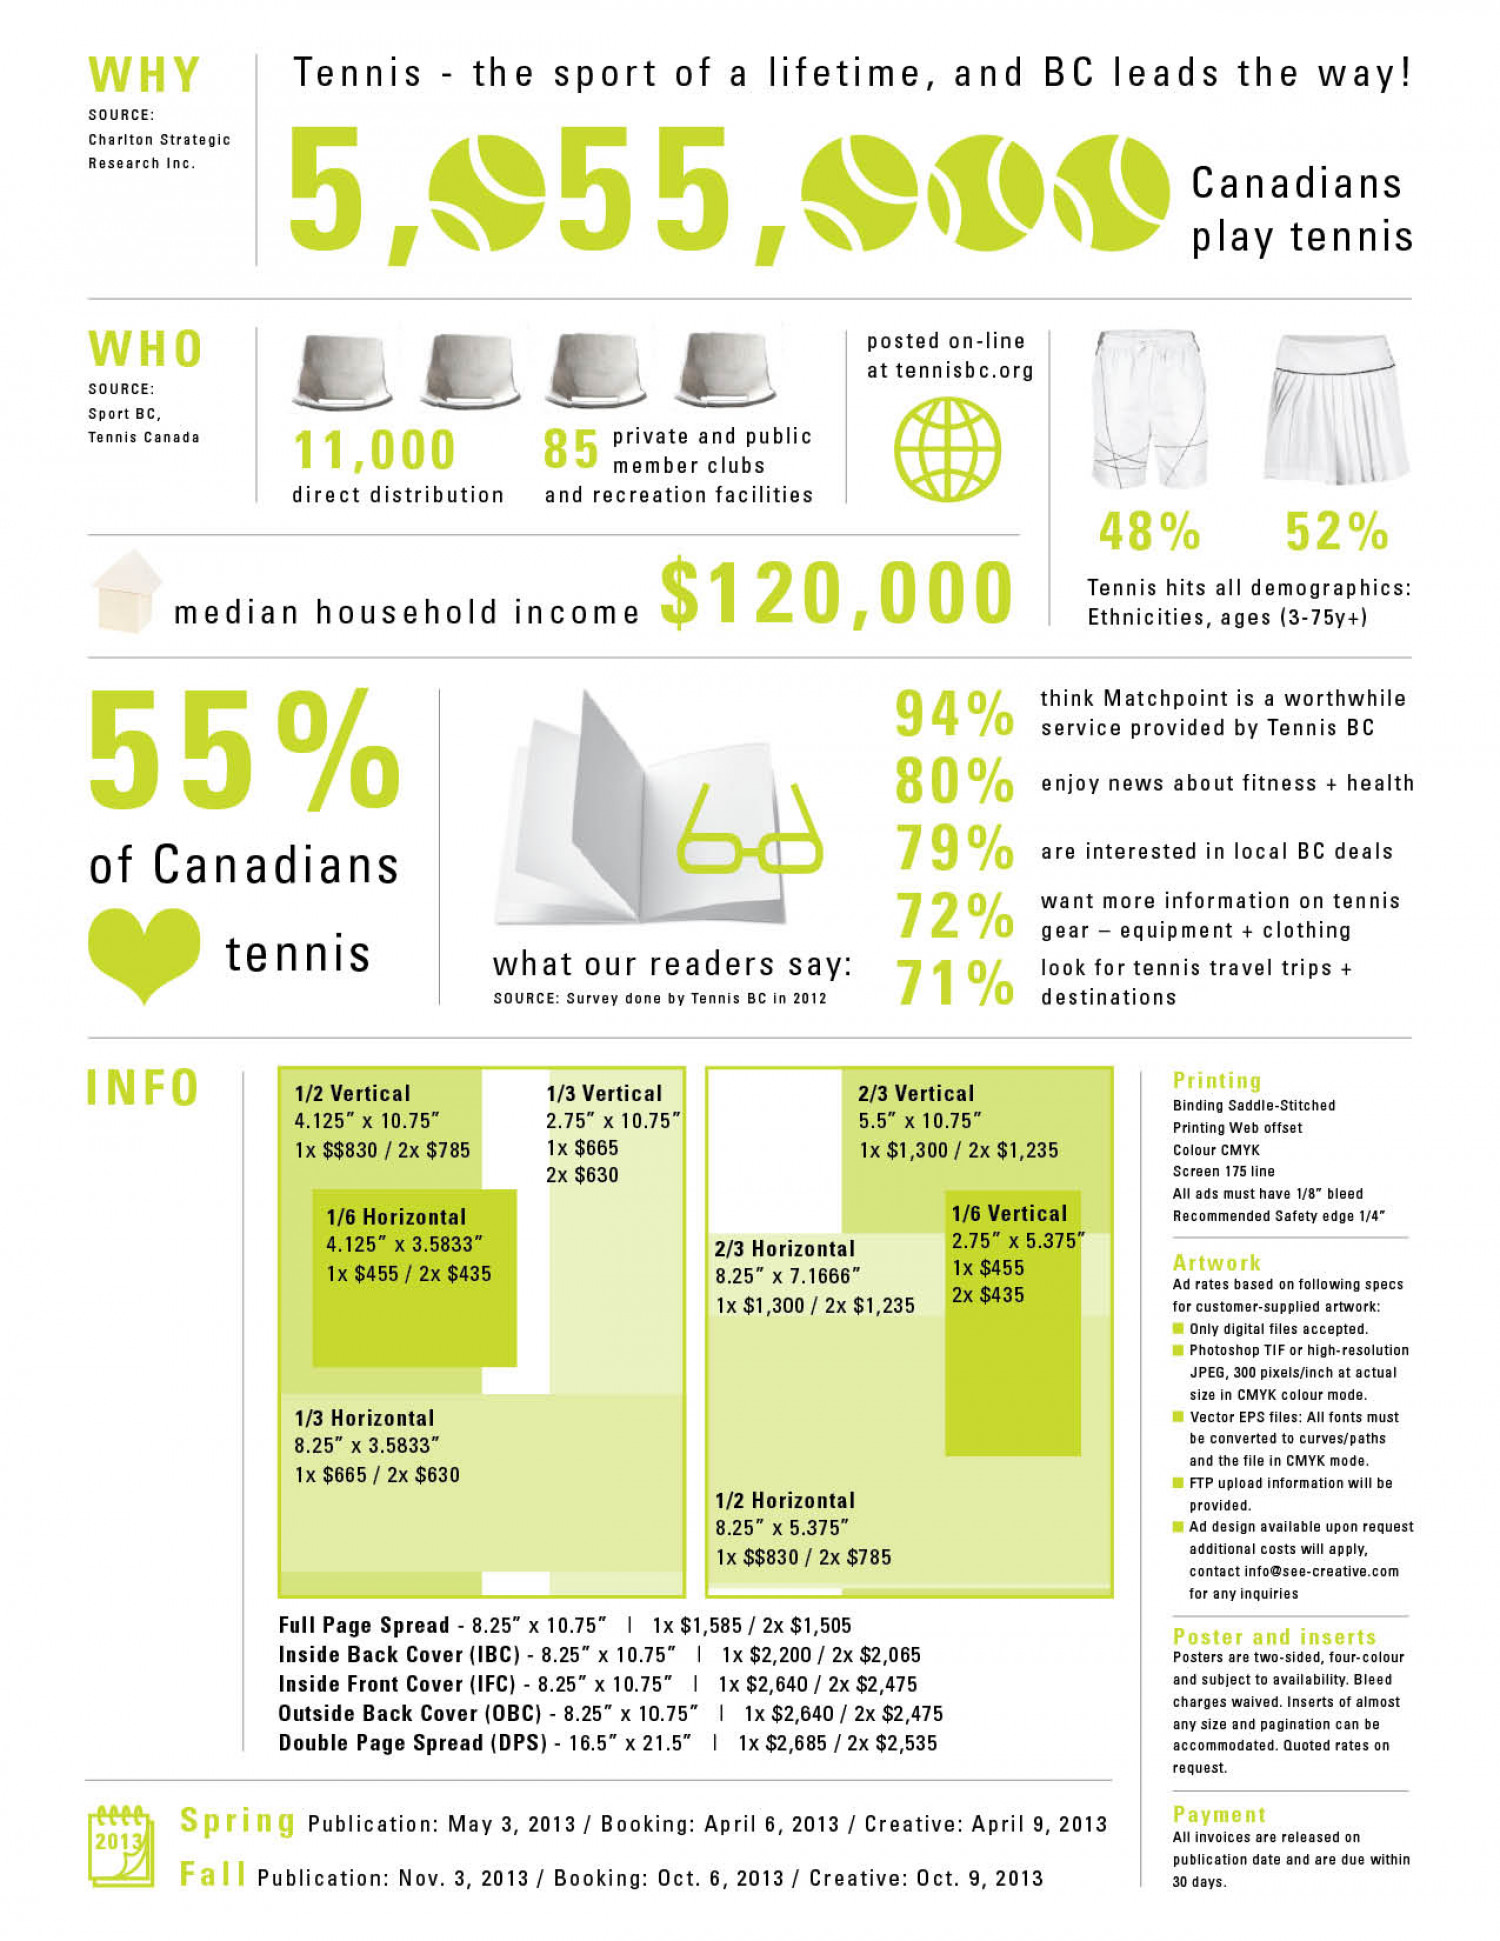 Tennis: The Sport of a Lifetime and British Columbia Leads the Way! Infographic